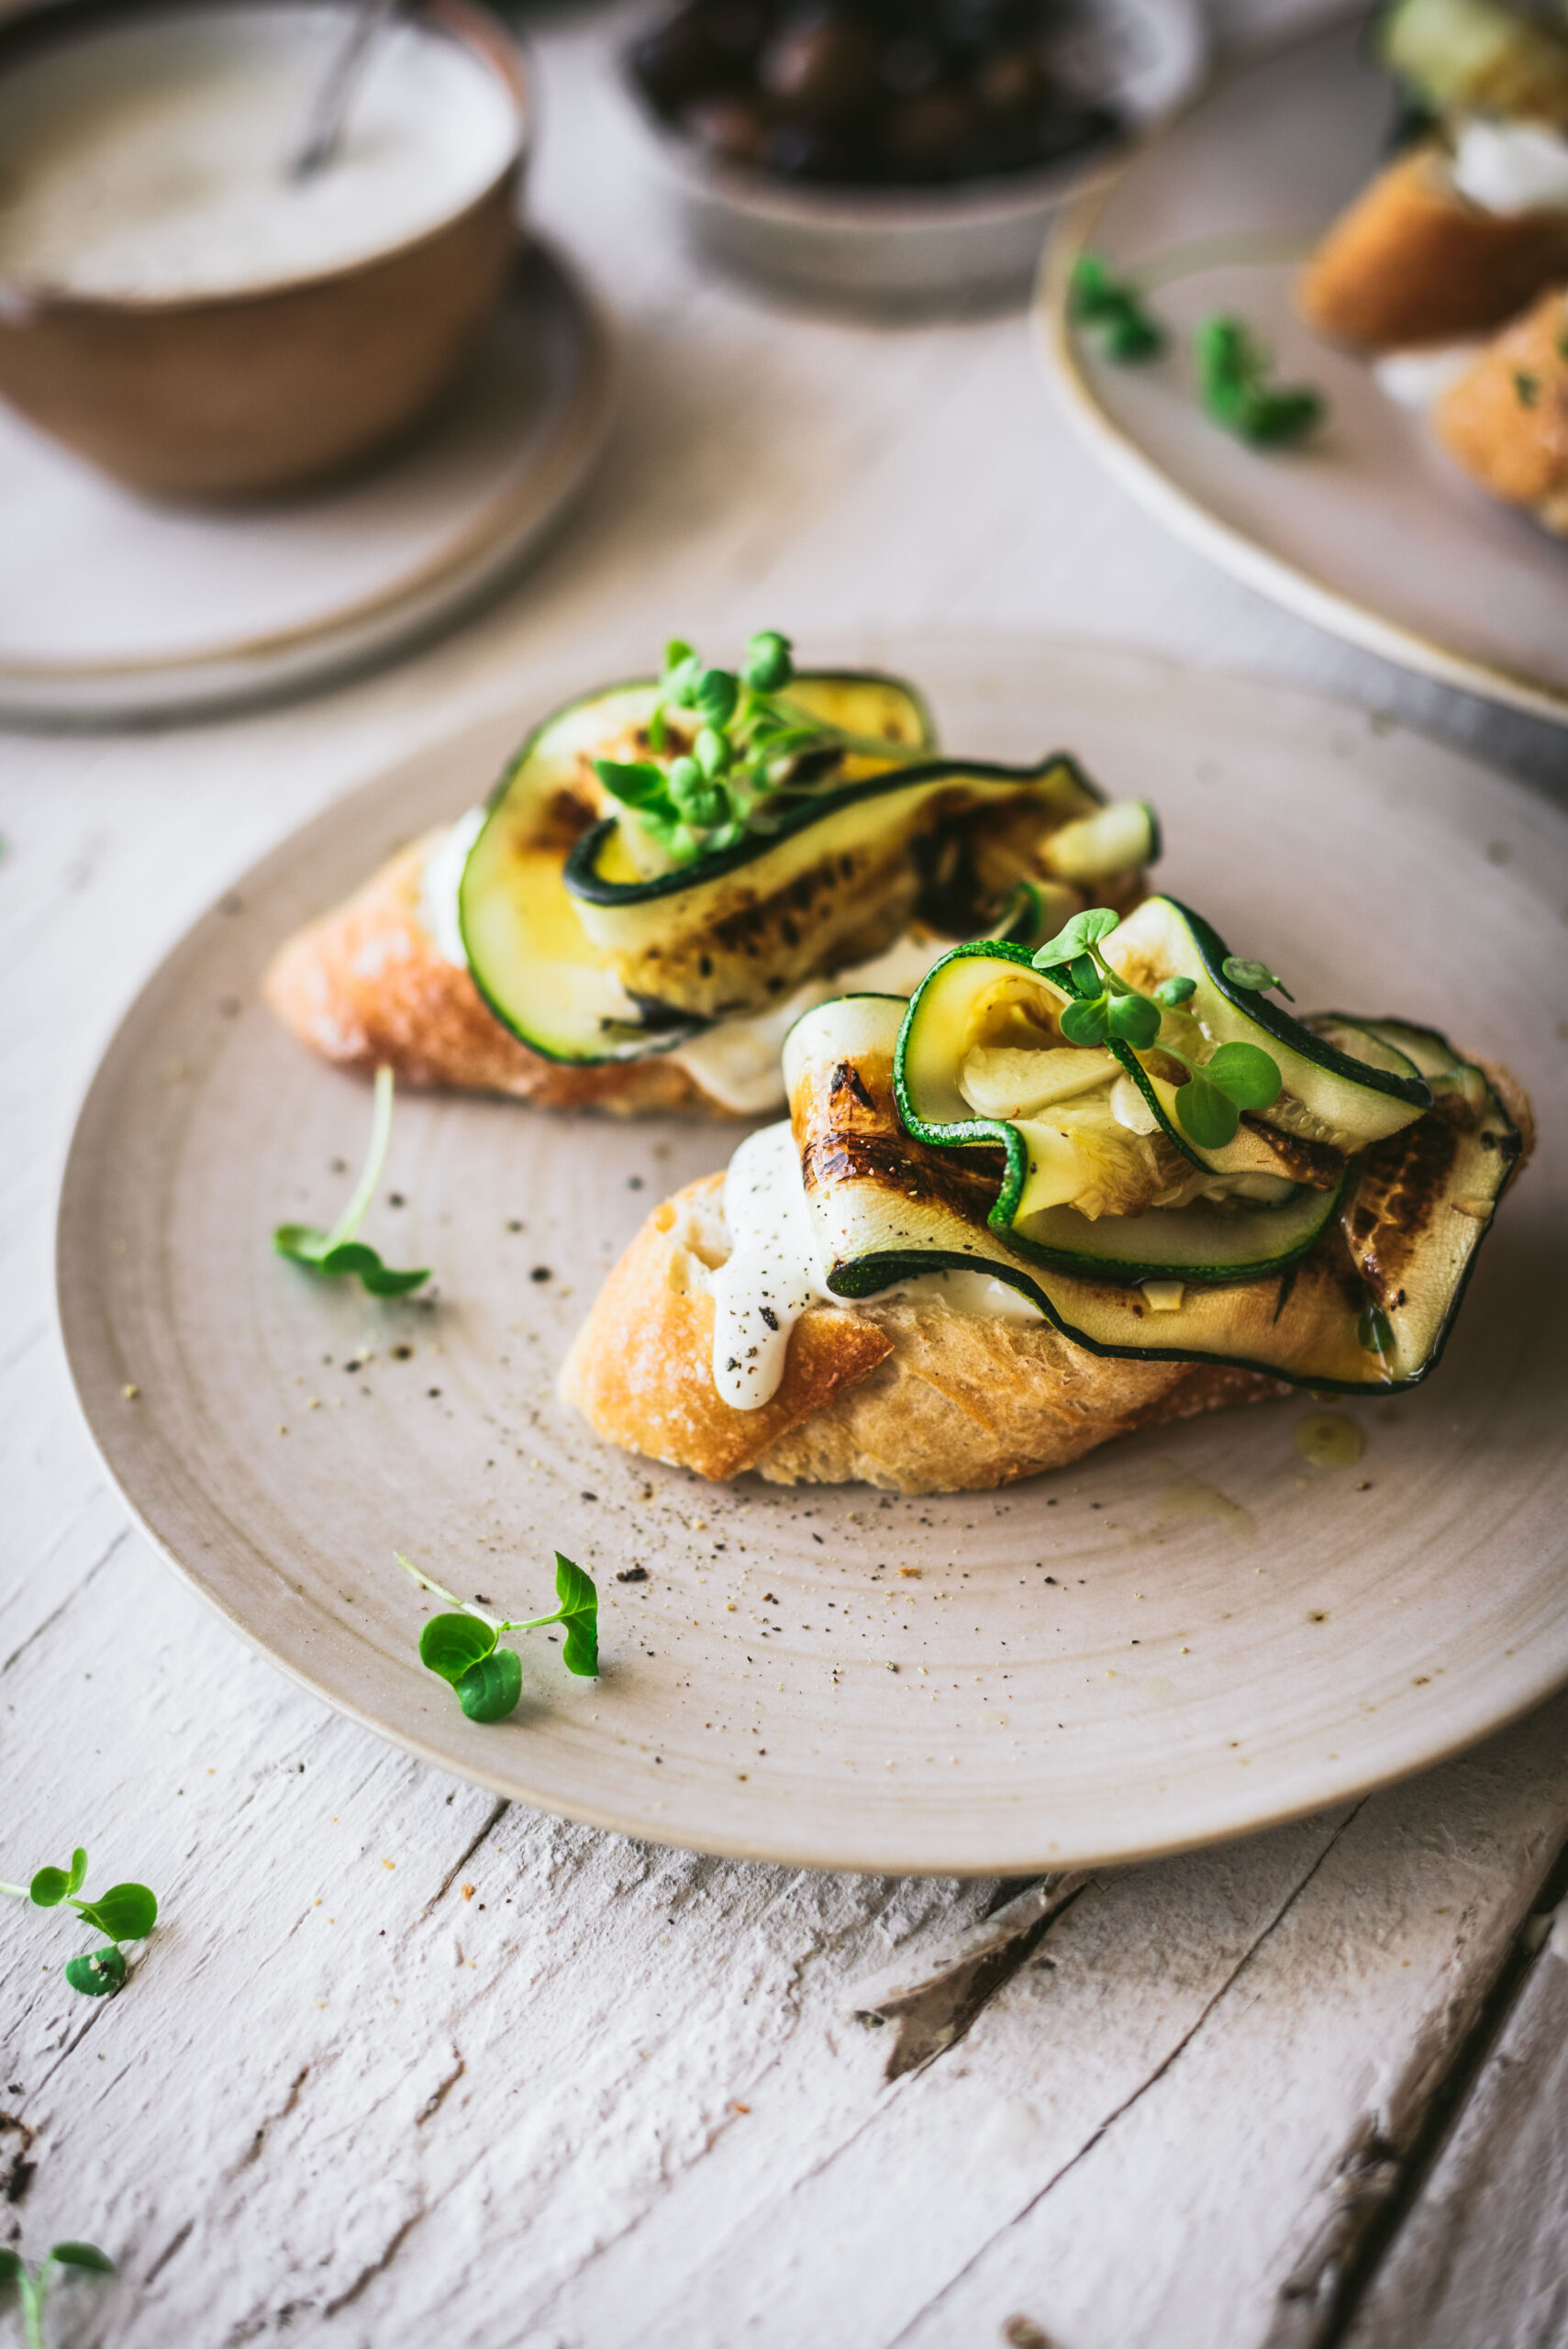 A crispy crostini topped with grilled, garlicky zucchini